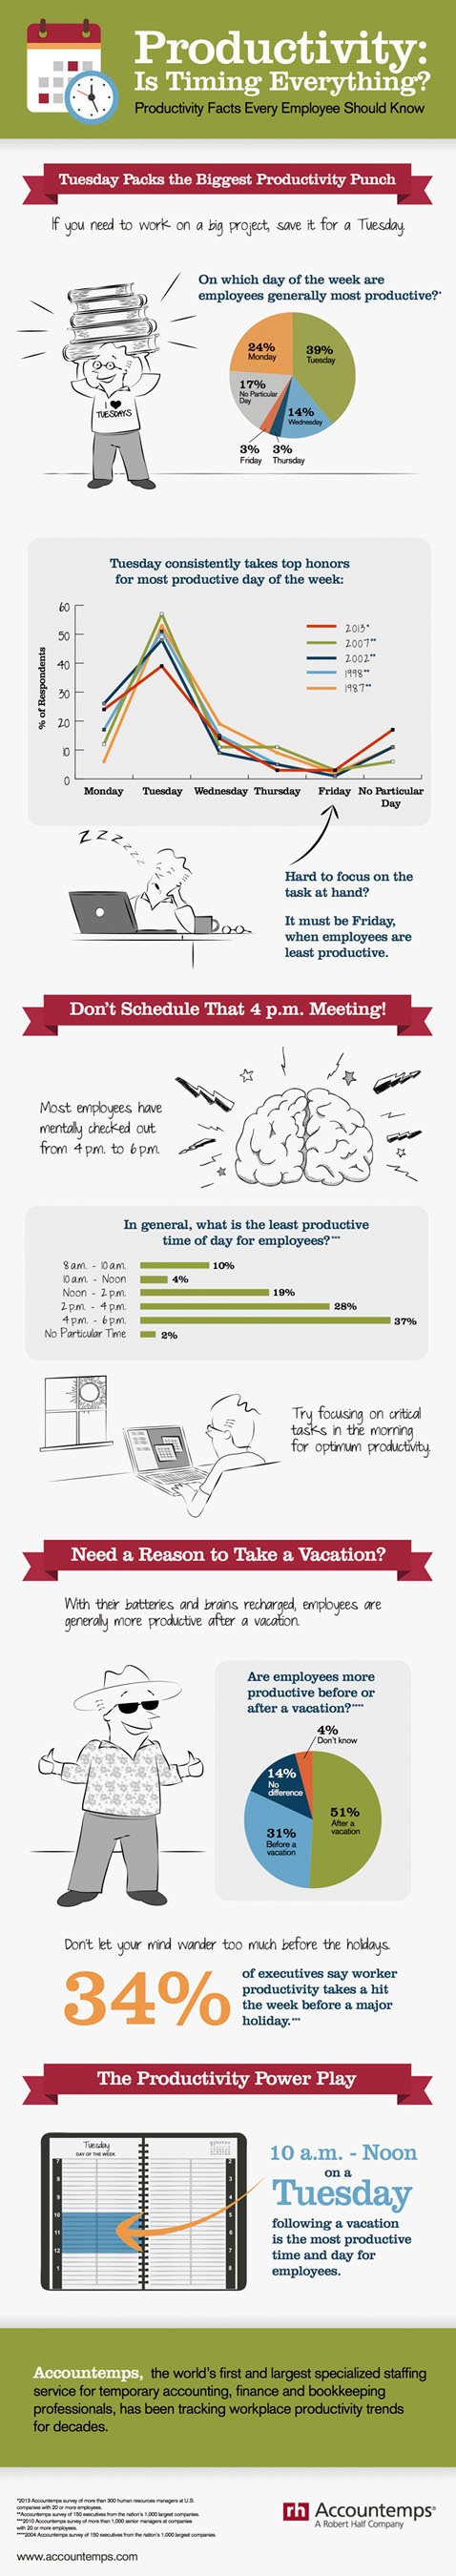 Accountemps worker productivity infographic.  (PRNewsFoto/Accountemps)